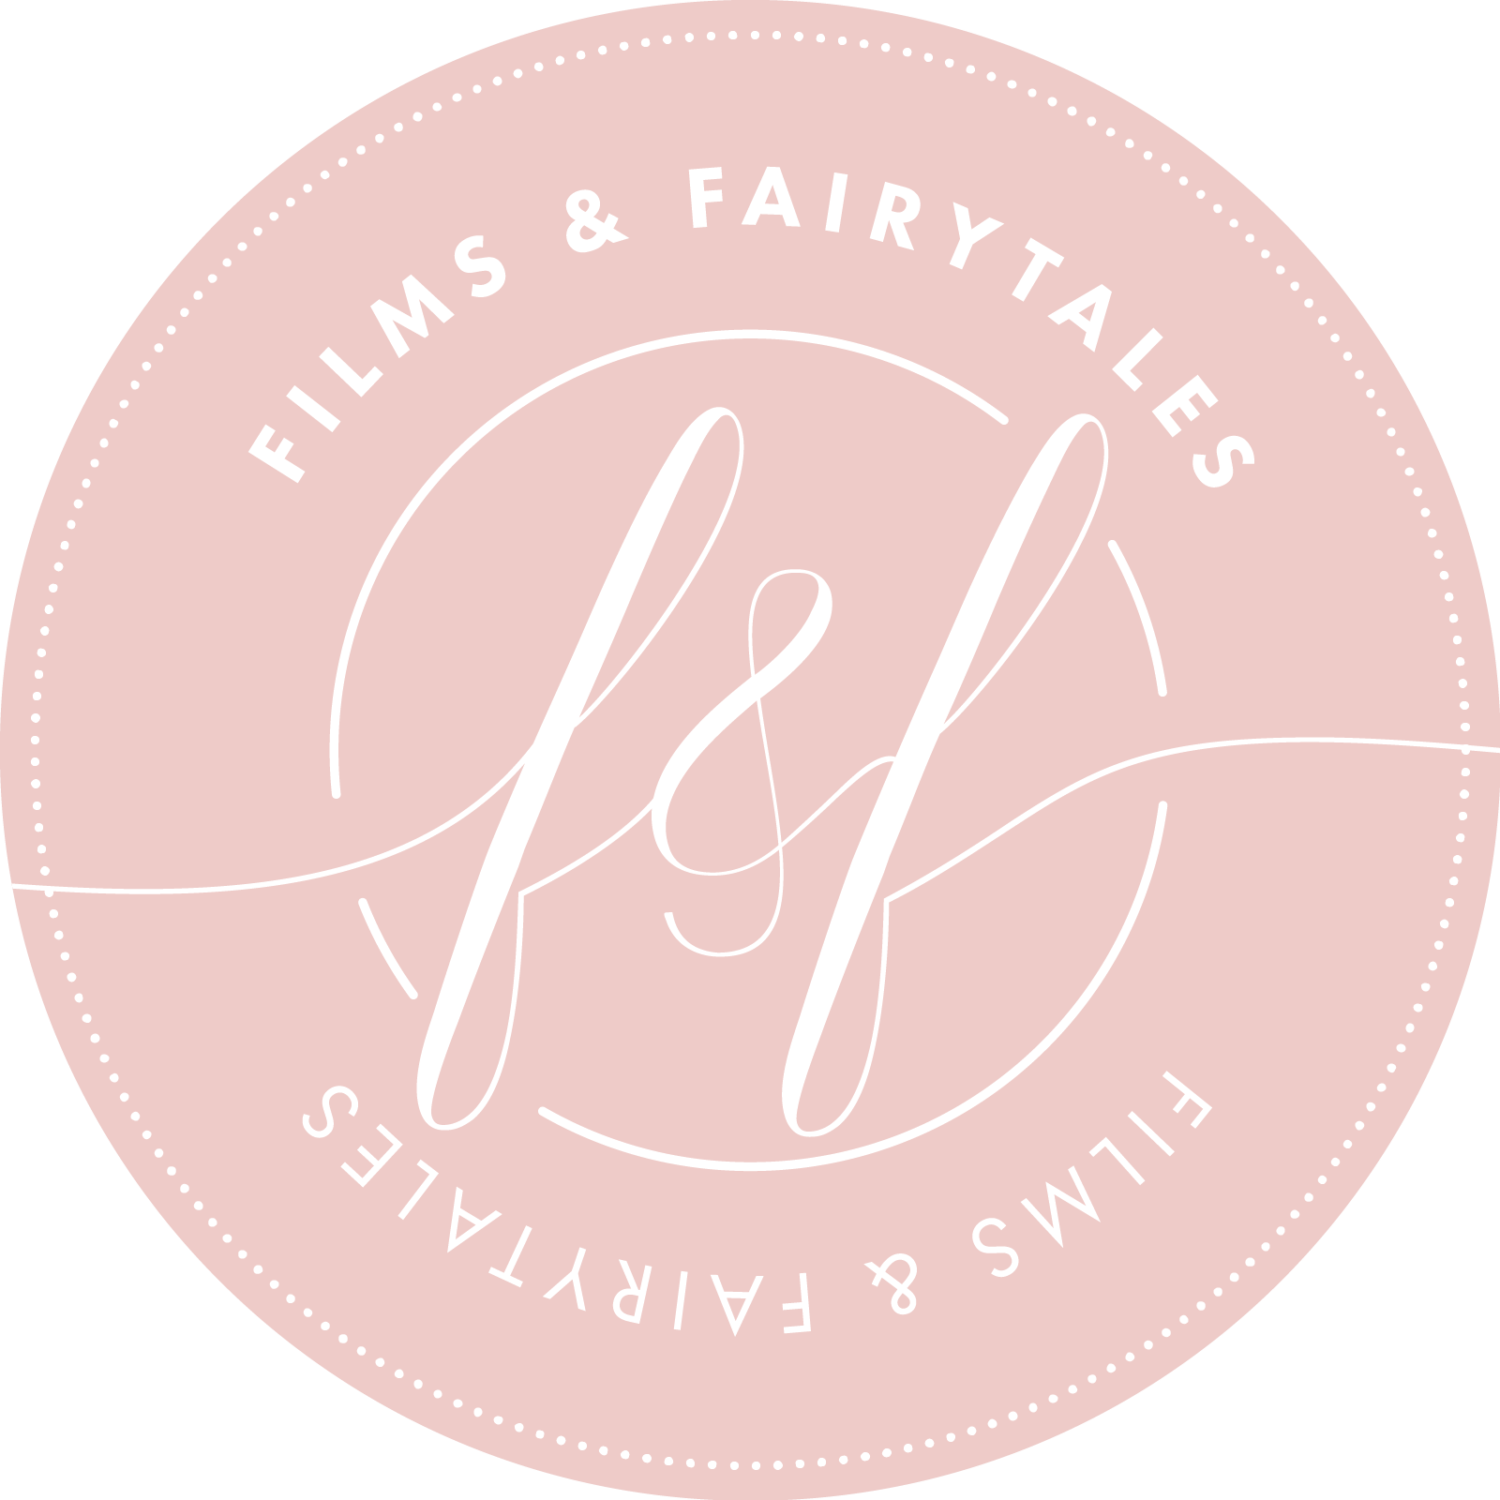 films and fairytales